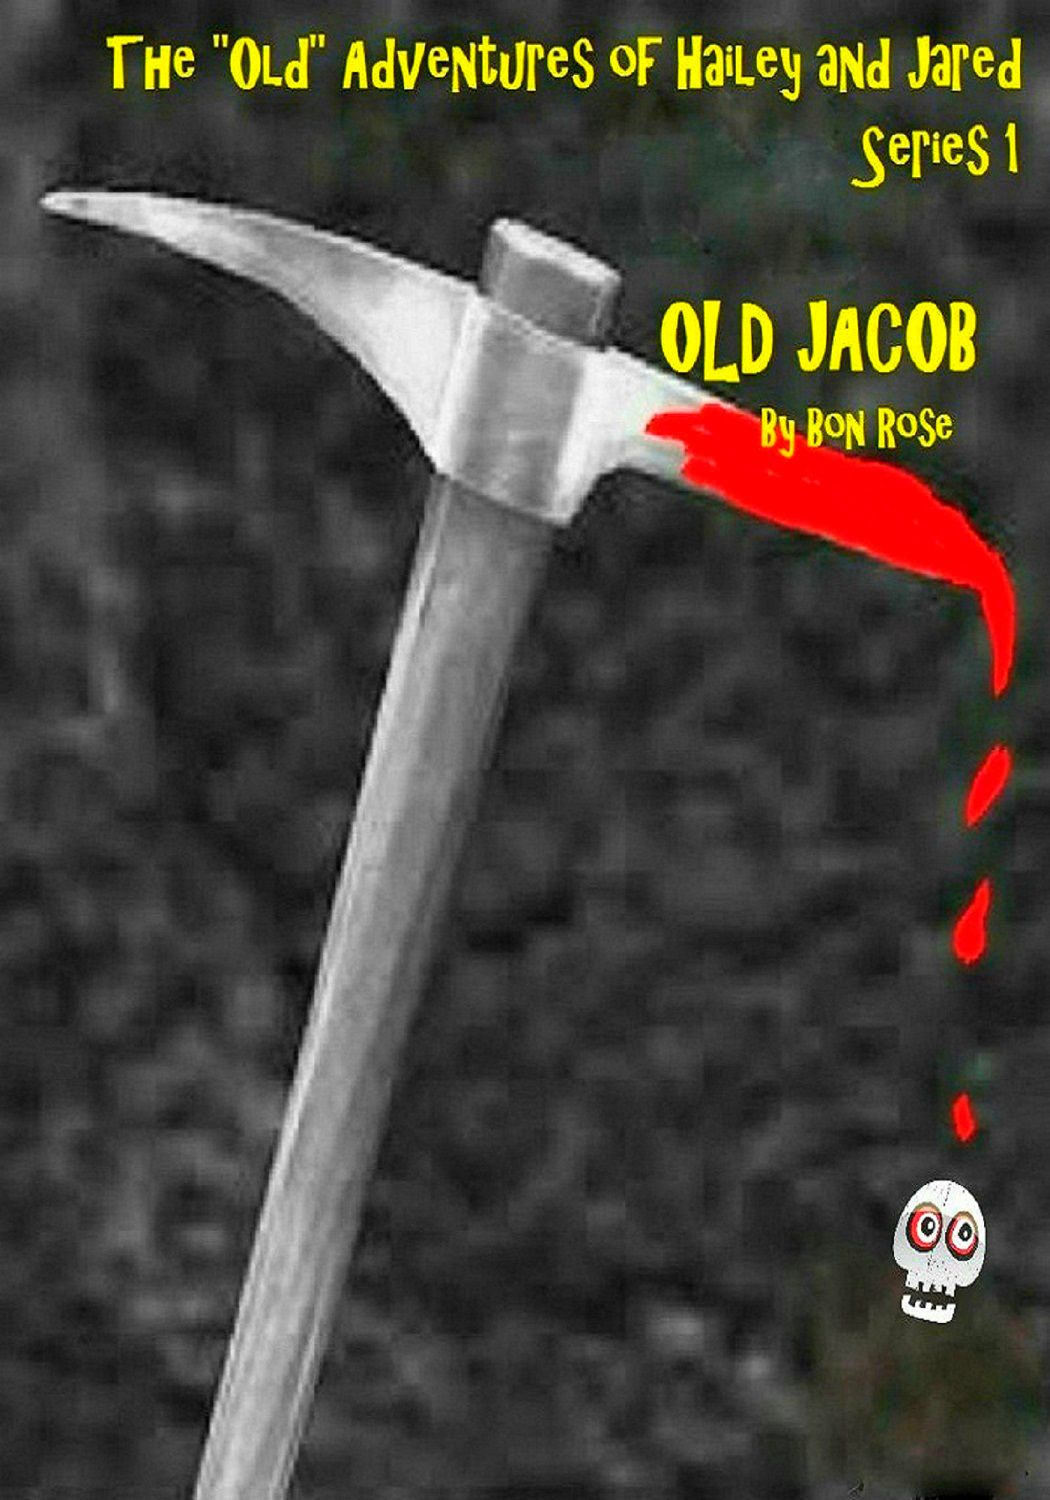 THE OLD CEMETERY (The Old Adventures of Hailey and Jared Series 7)